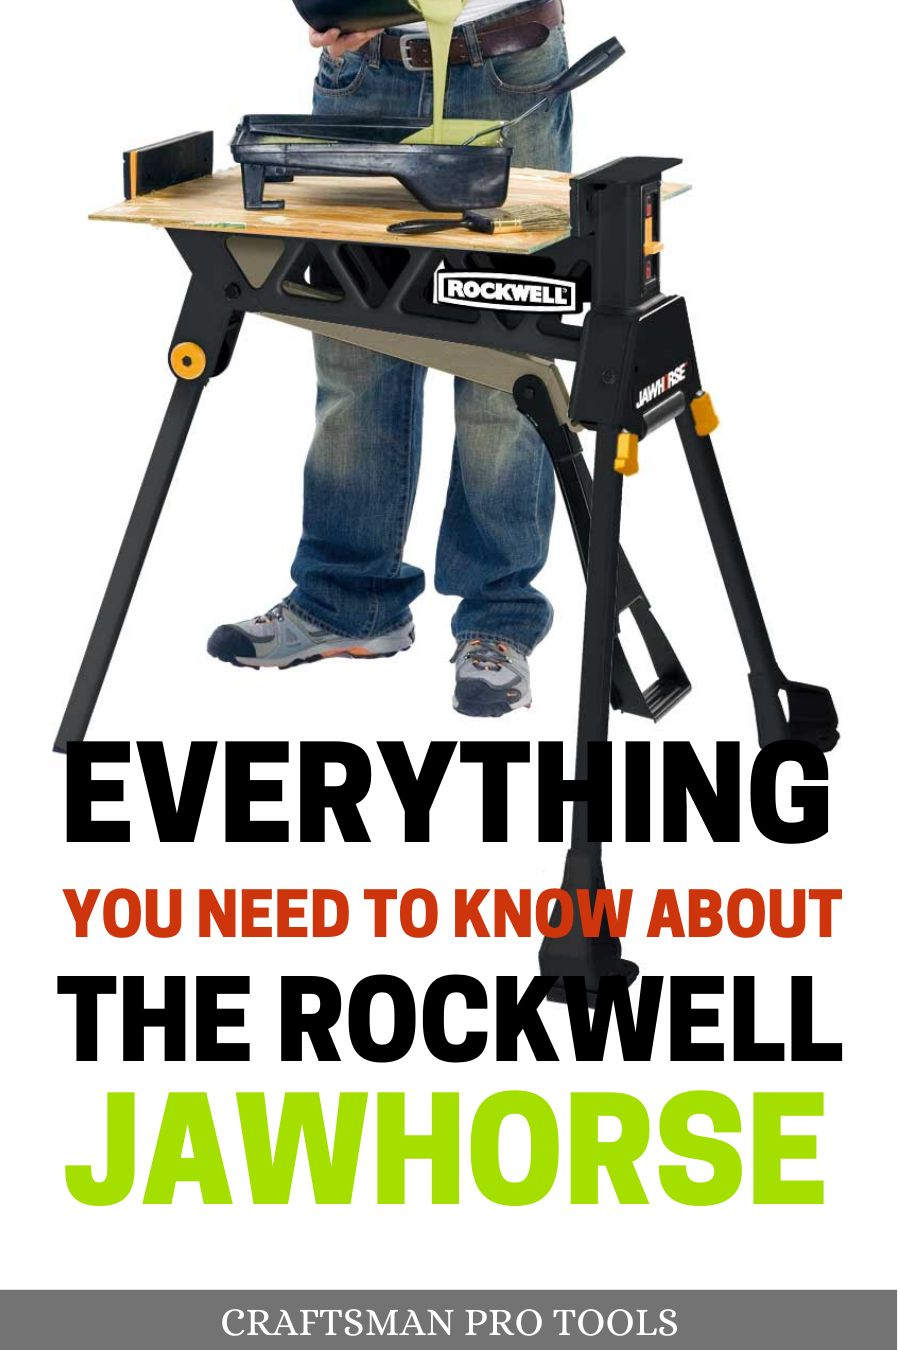 the rockwell jawhorse